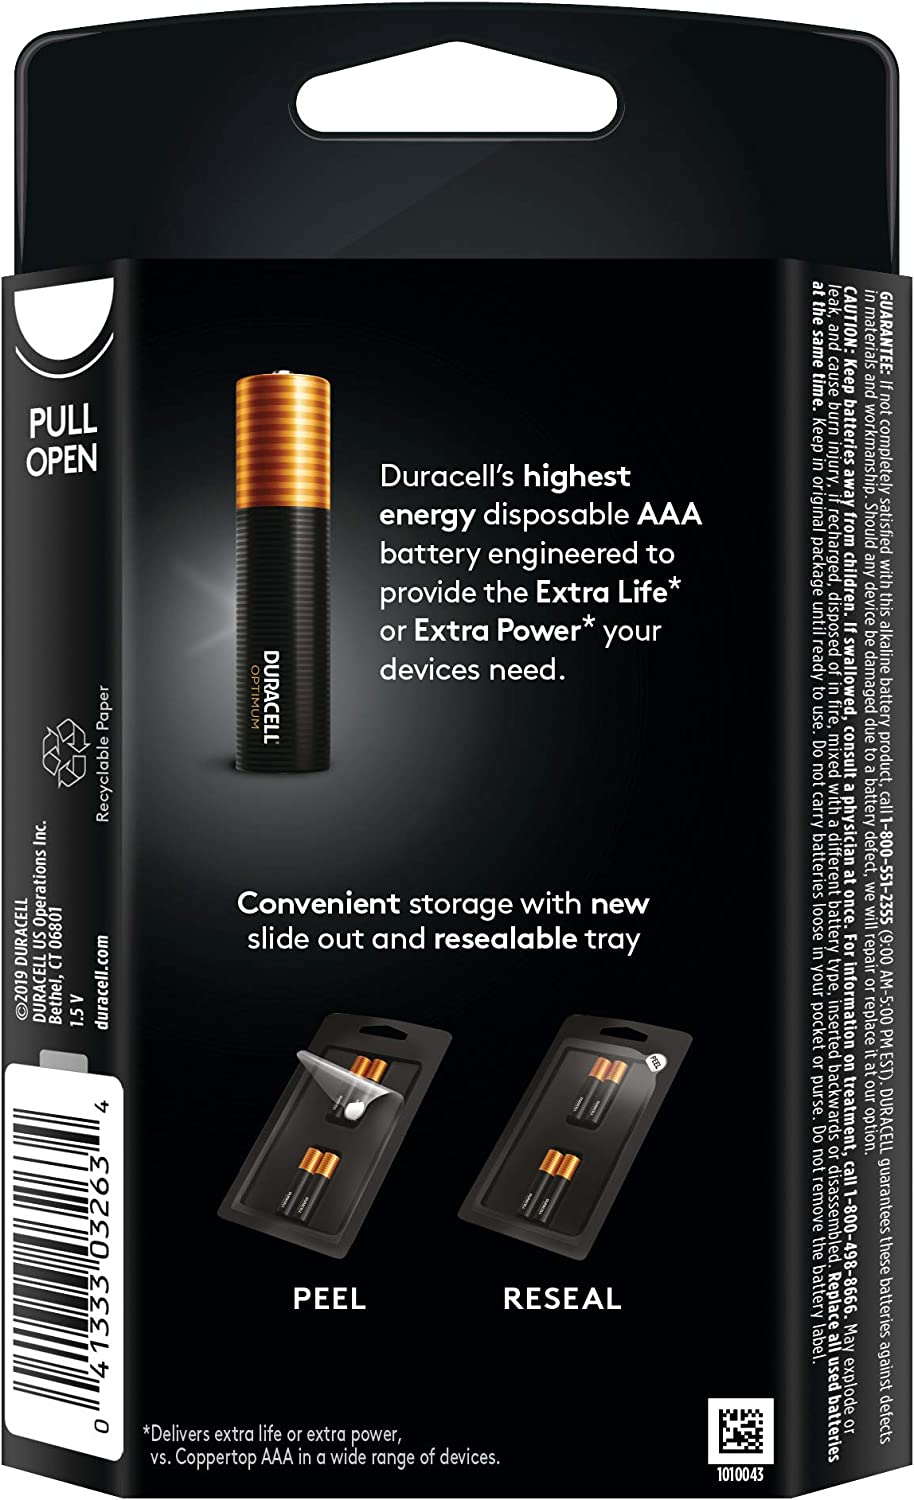 Duracell Optimum AAA Batteries Resealable Package Premium Triple A 1.5V Alkaline Battery 12 Count Made in The USA Convenient